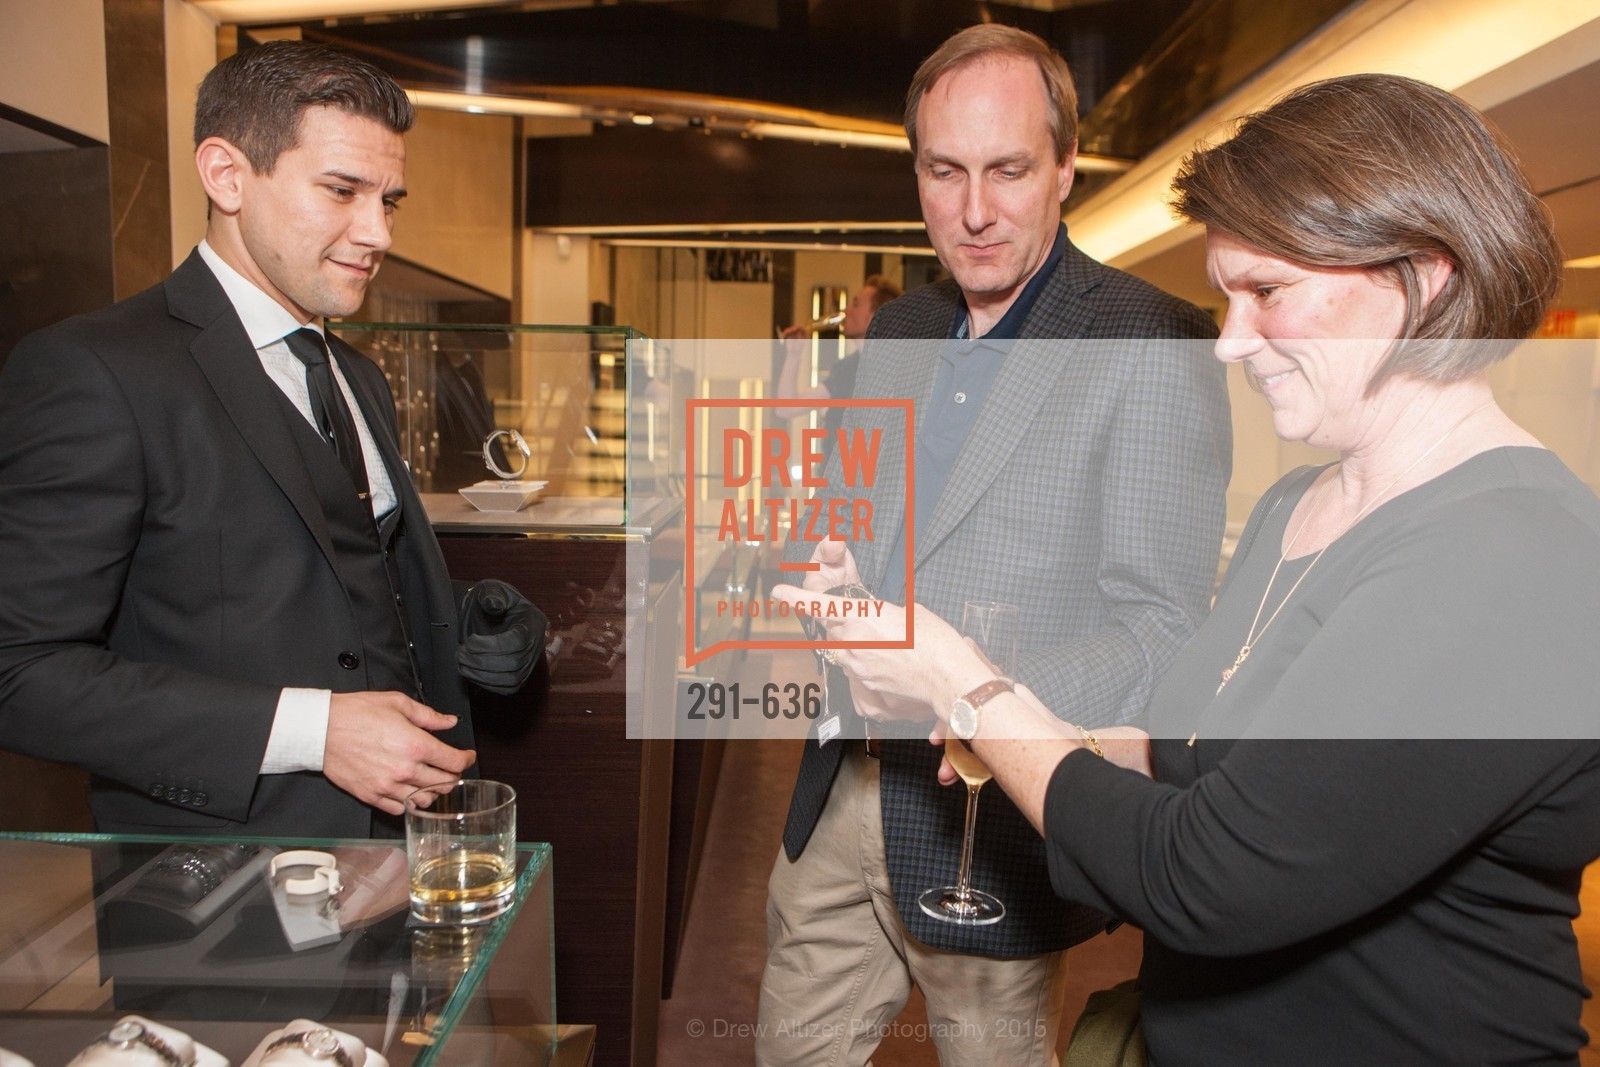 Salvatore Scotto, Jared Wilson, Melanie Wilson, Bulgari San Francisco Presents WINE, WHISKEY & WATCHES, Bulgari San Francisco. 200 Stockton Street, December 8th, 2015,Drew Altizer, Drew Altizer Photography, full-service agency, private events, San Francisco photographer, photographer california